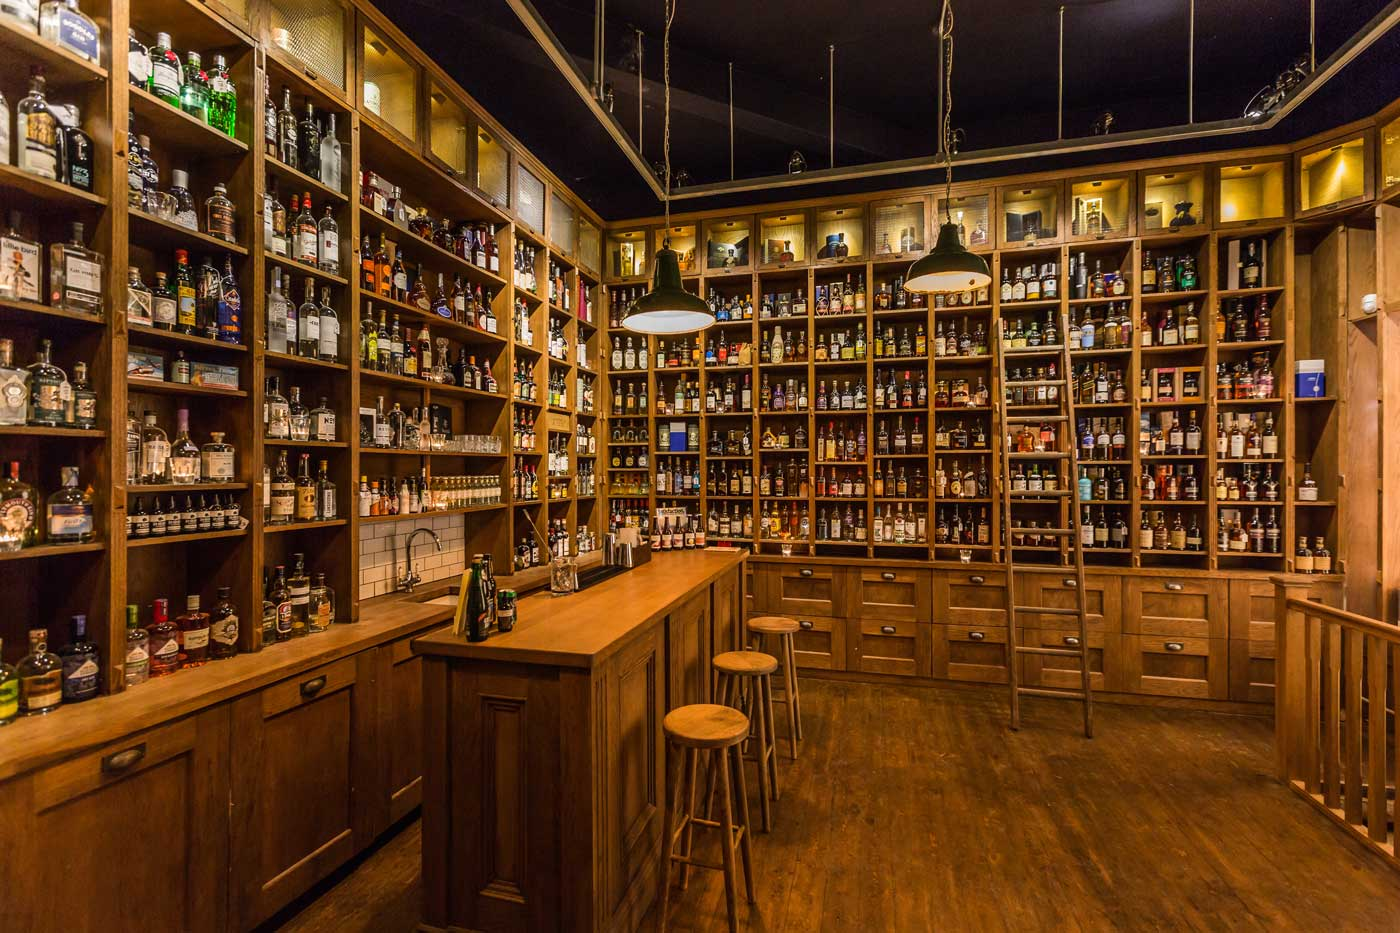 tt-liquor-gin-tasting-cocktail-making-classes-shoreditch-east-london-